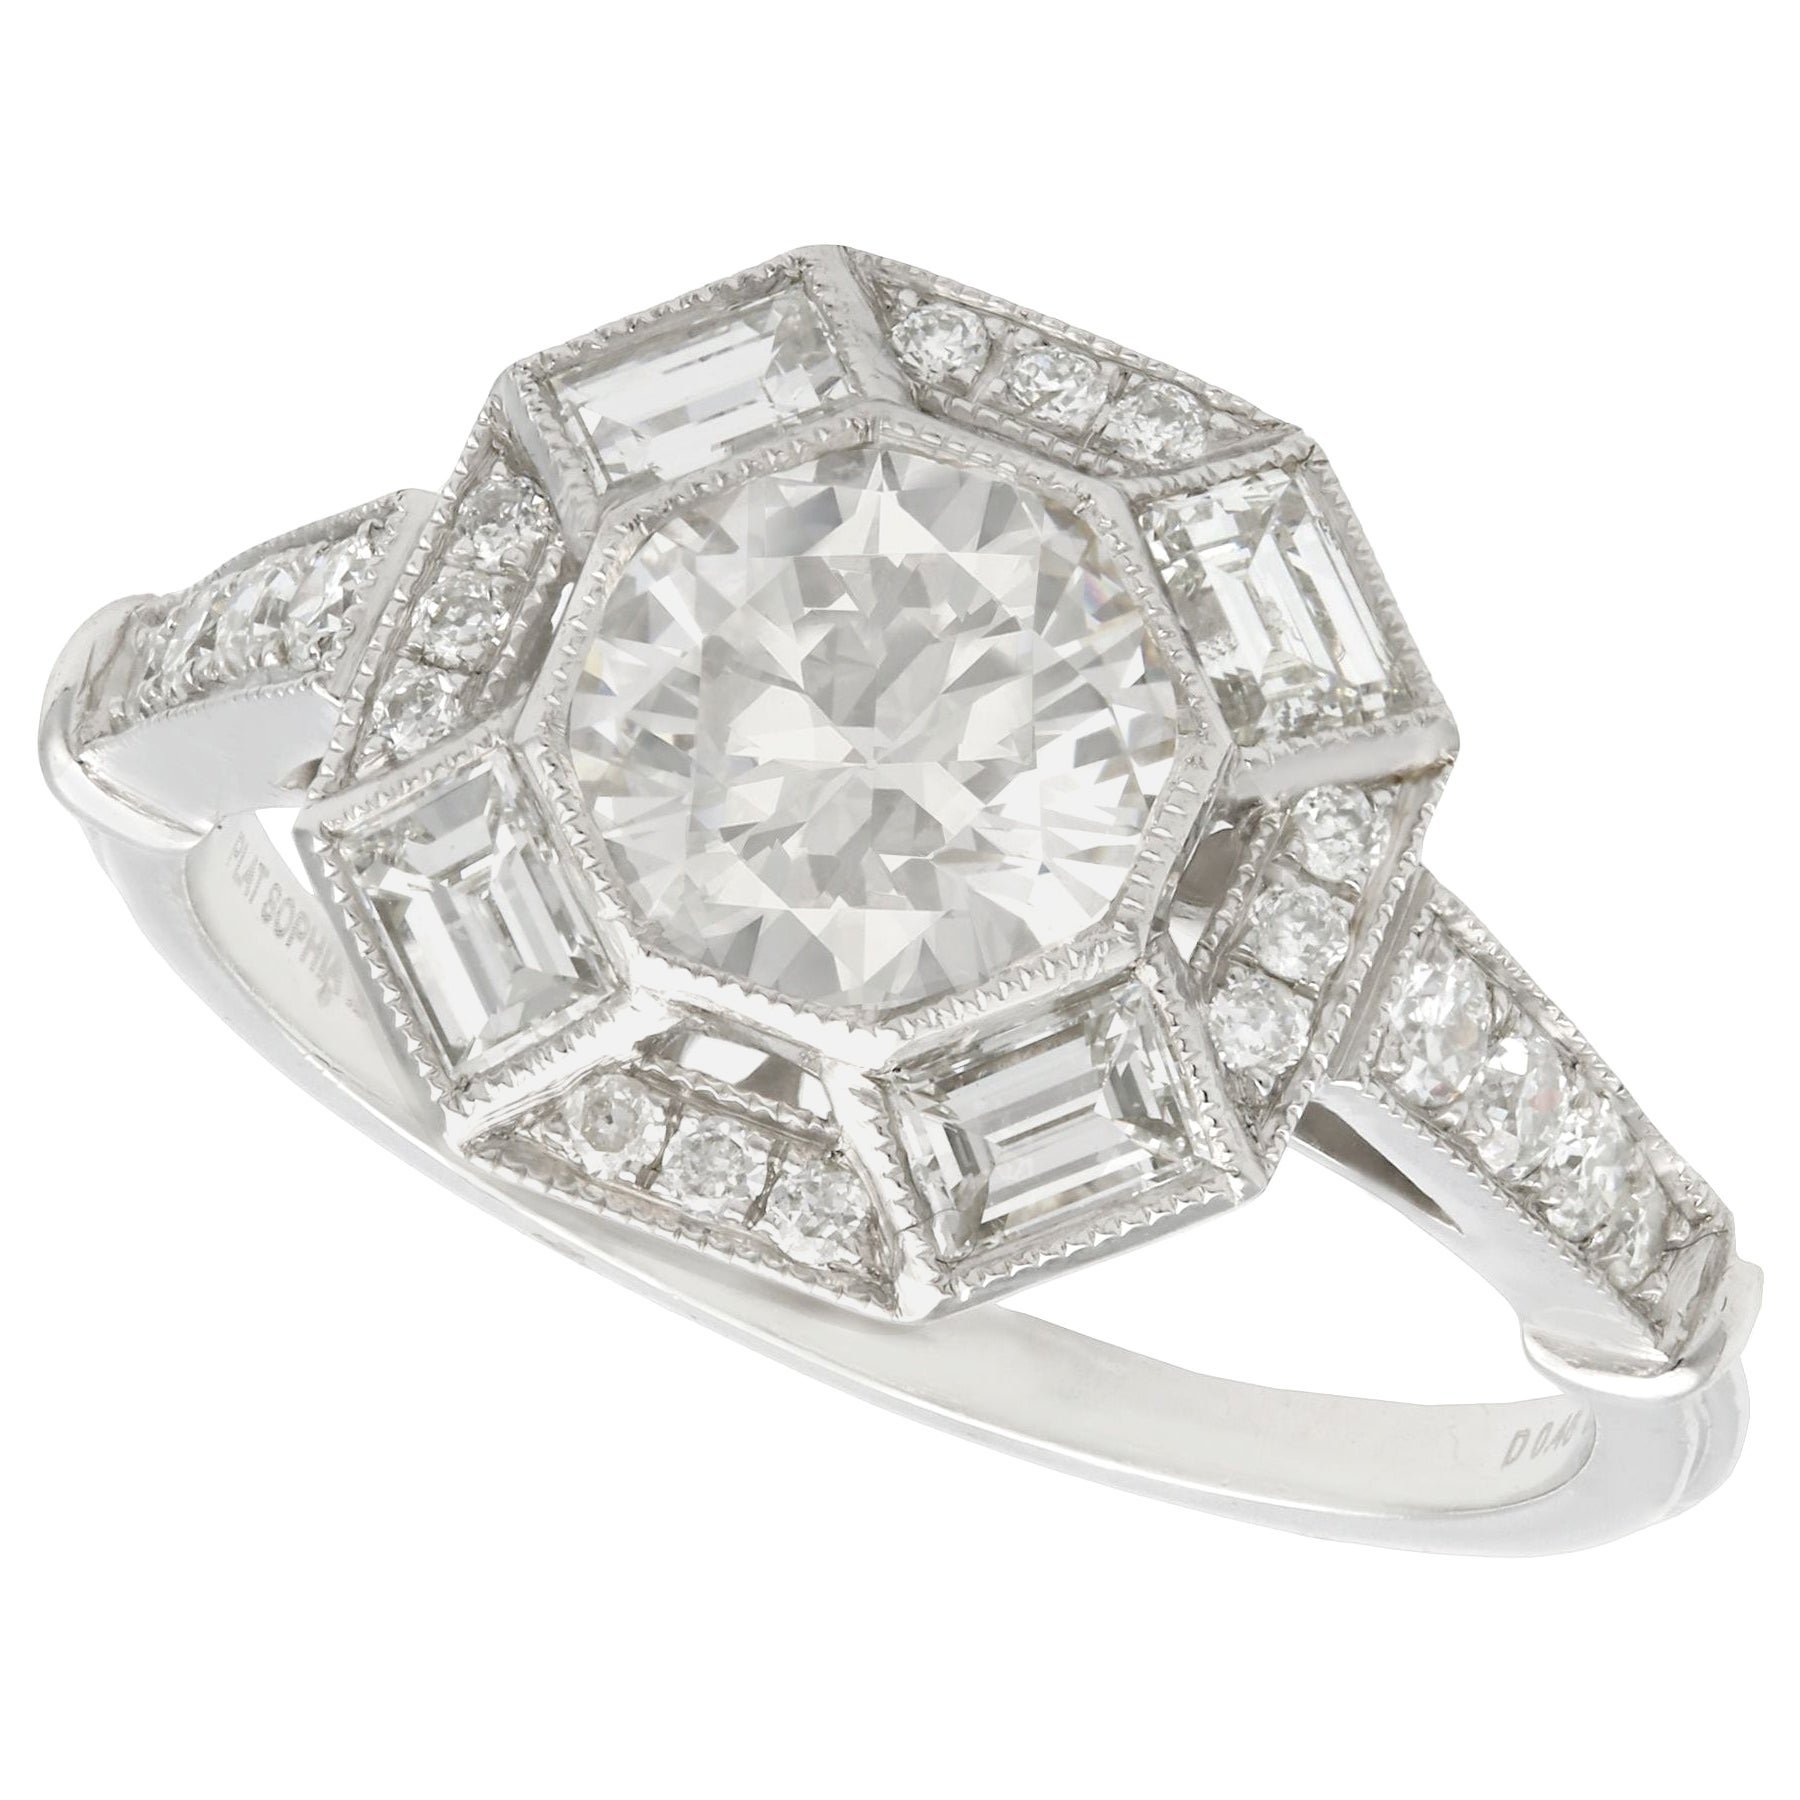 Hallmarked 1.79 Carat Diamond and Platinum Cocktail Ring